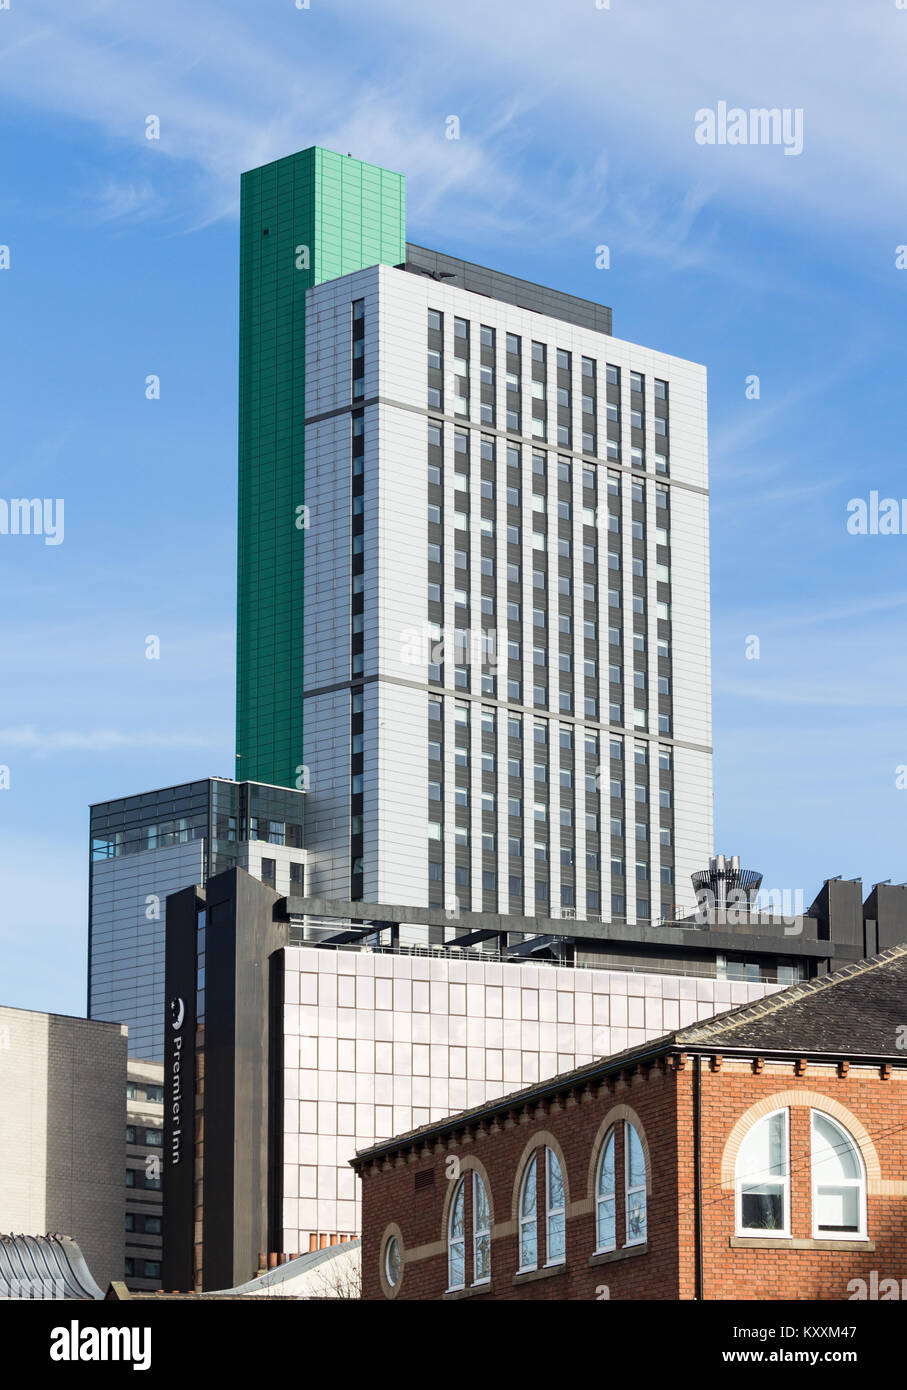 High rise building in Leeds city centre. Yorkshire. UK - Stock Image